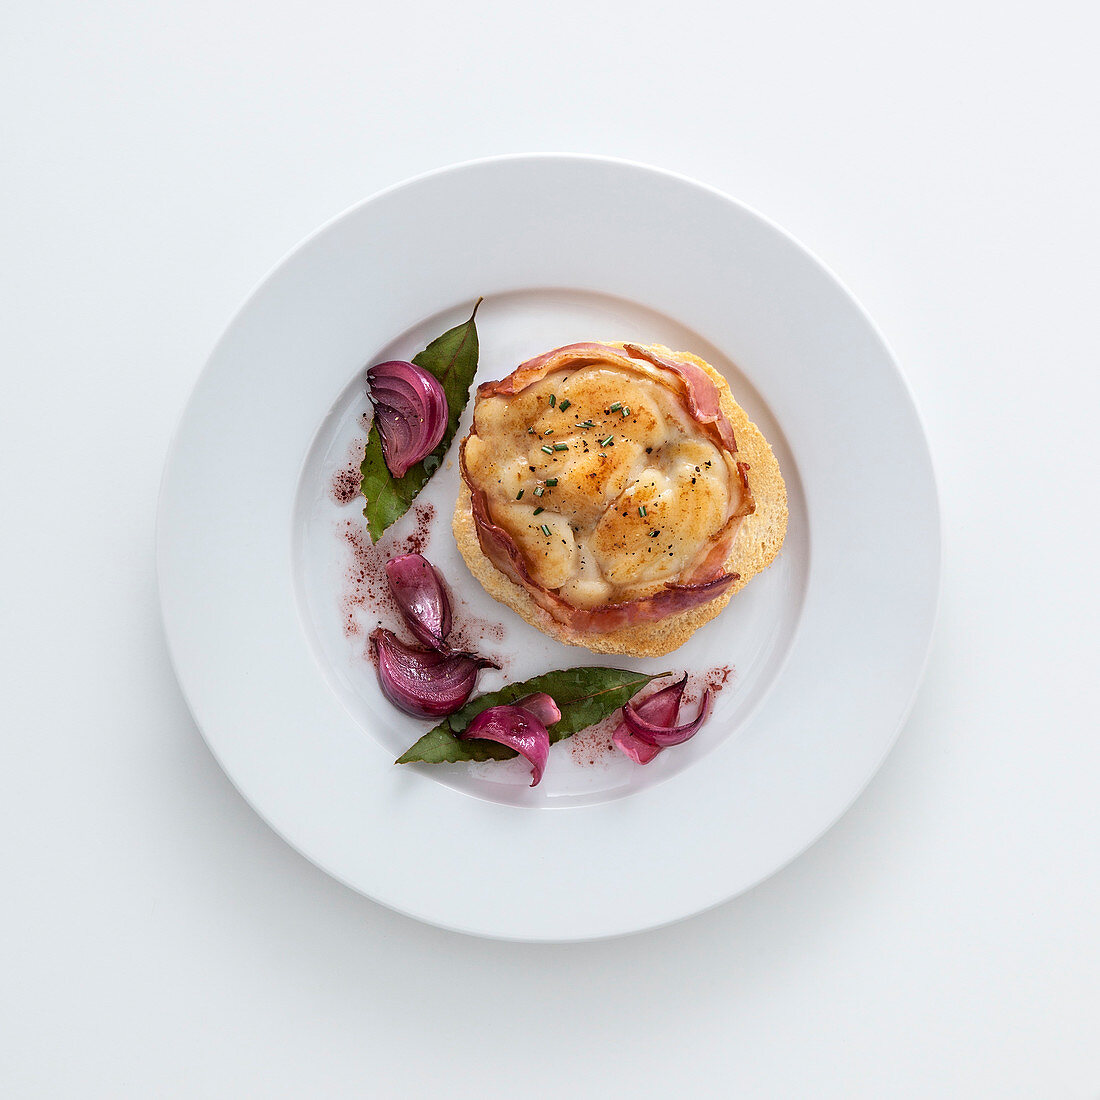 Champagne and saffron monk fish with bacon on toast